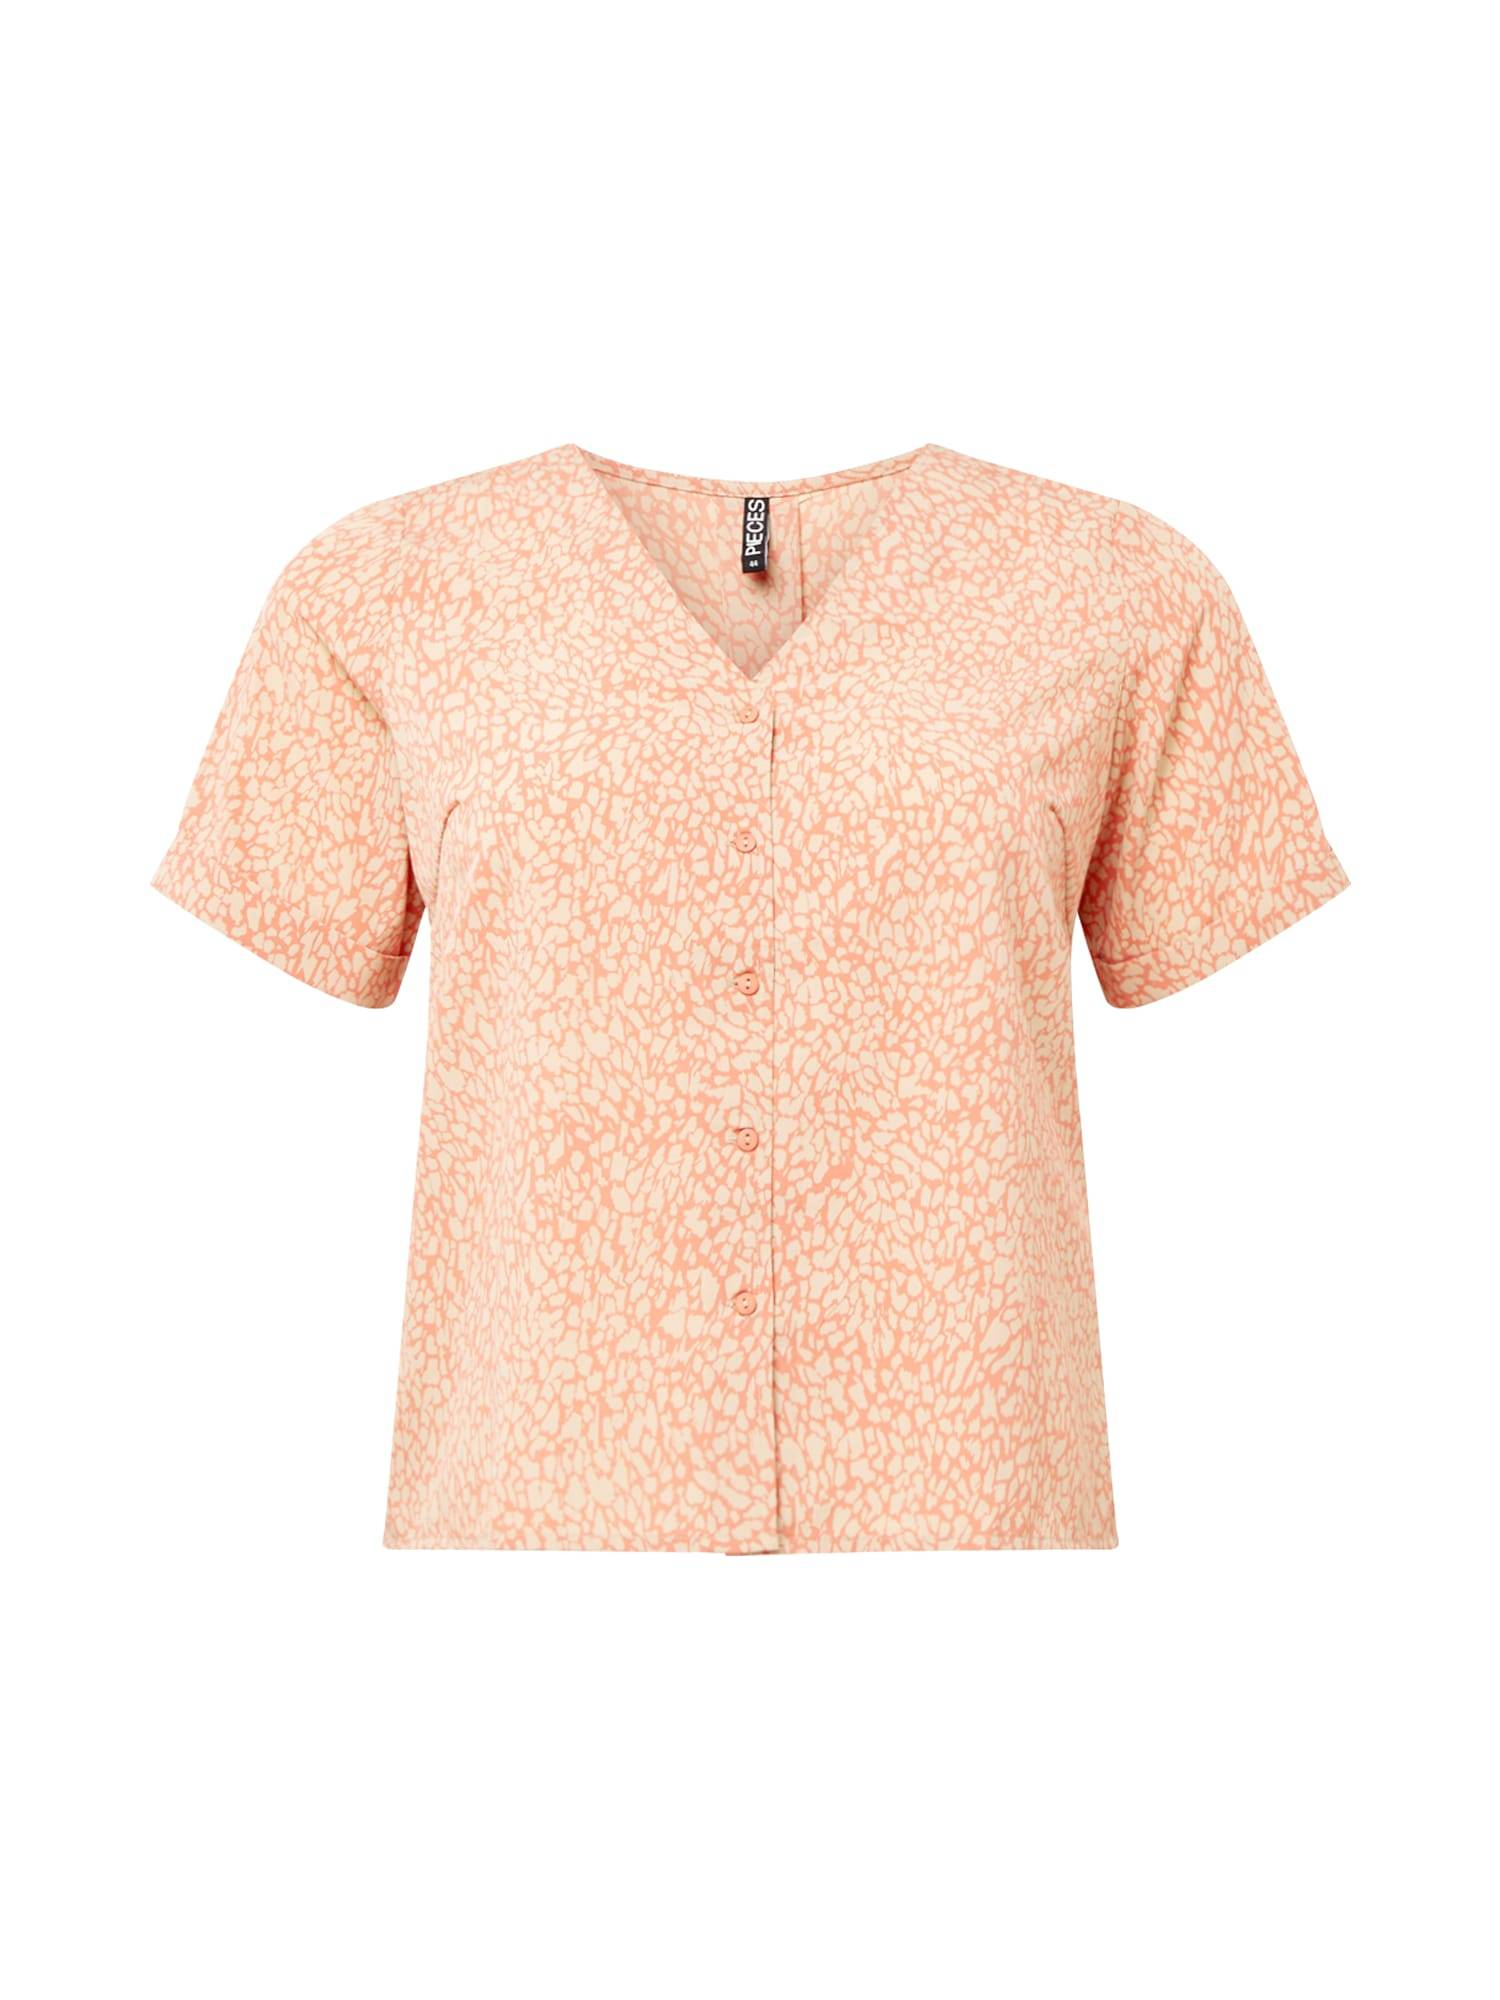 PIECES (Curve) Chemisier 'GILBERTA'  - Orange - Taille: 44 - female